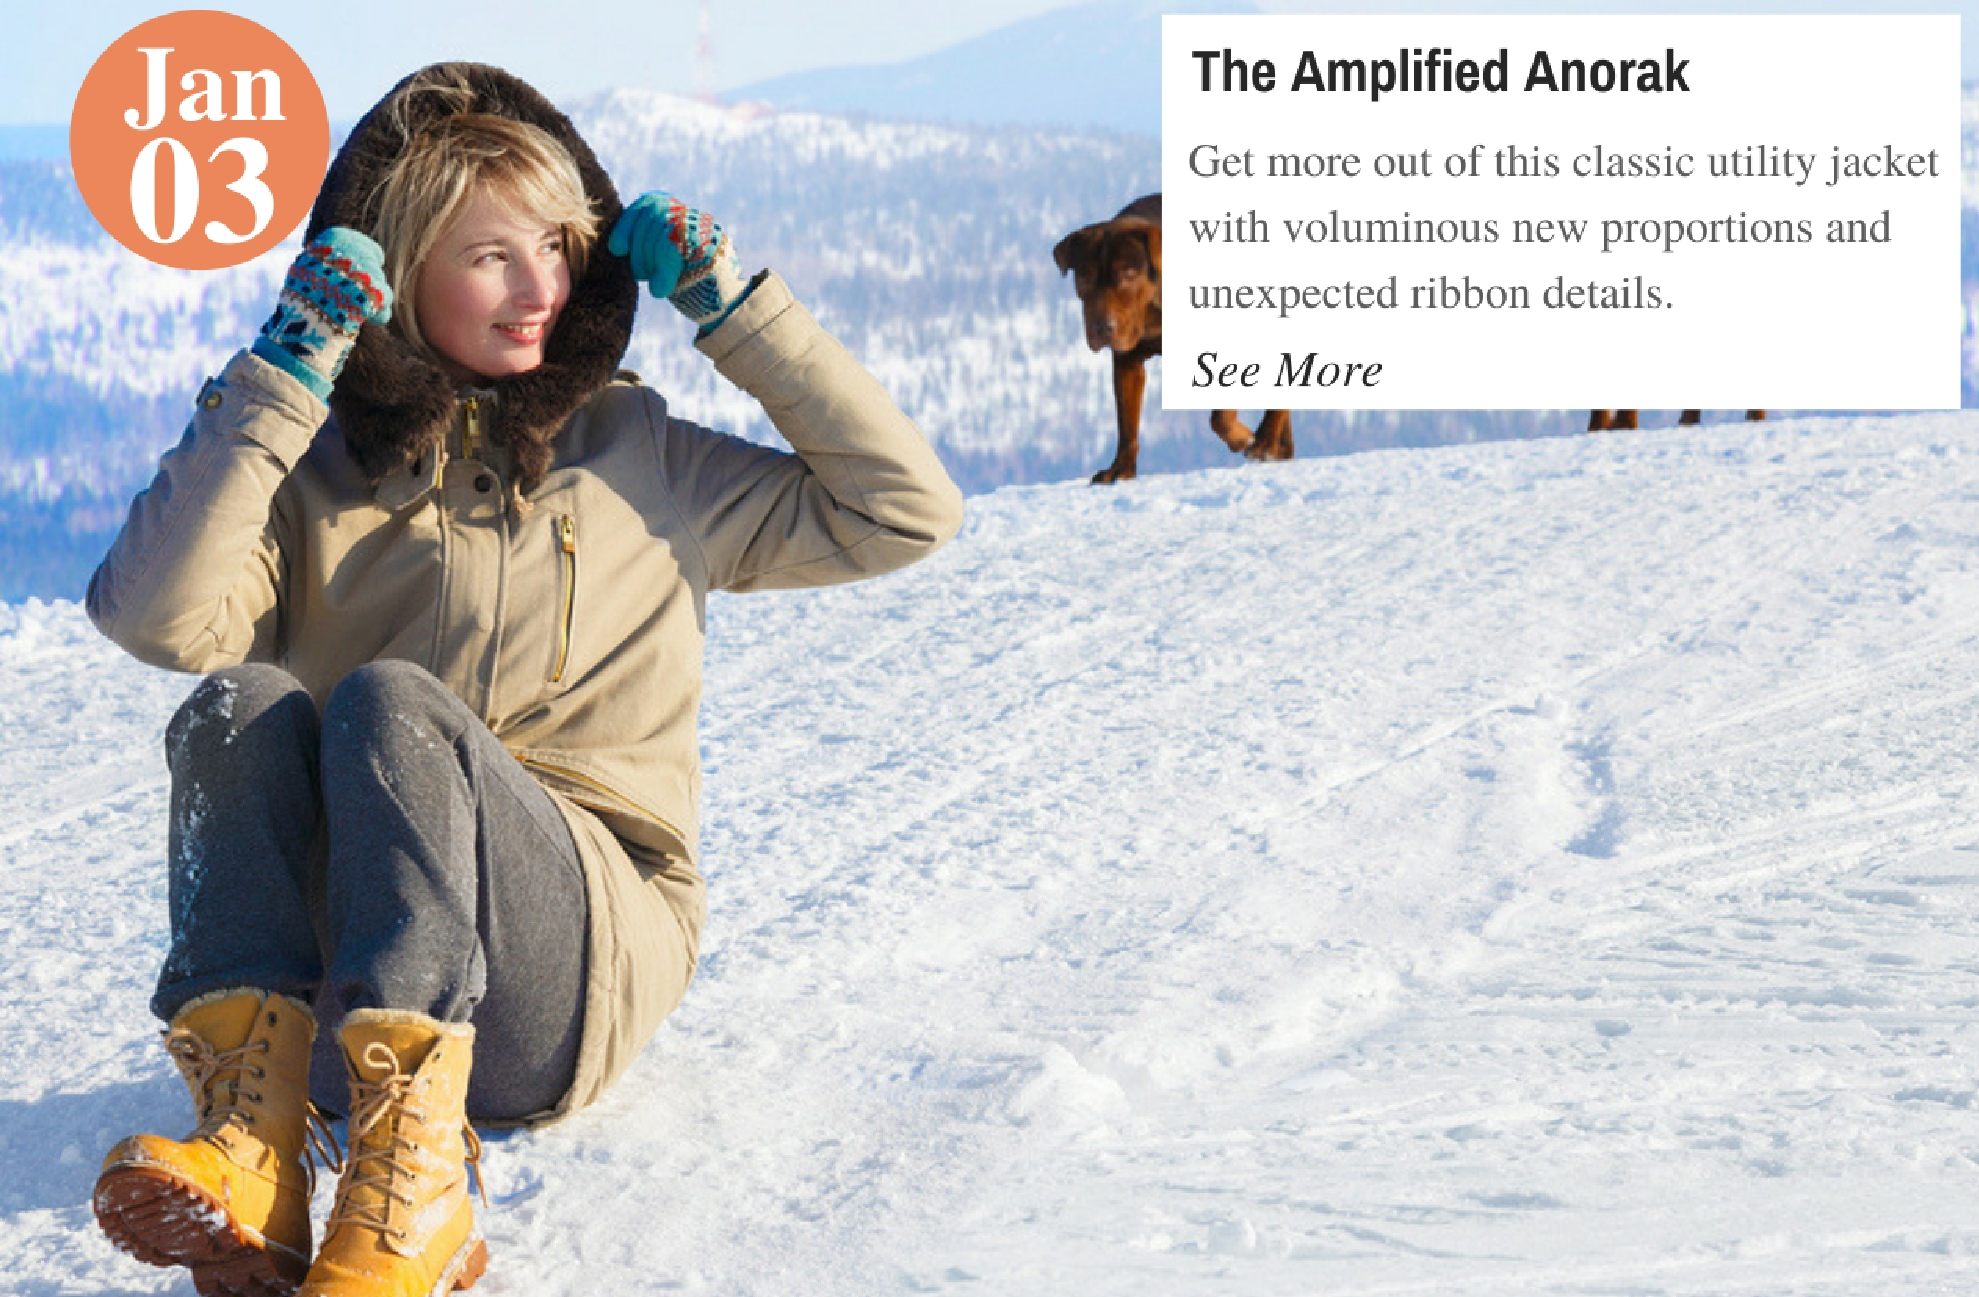 The Amplified Anorak